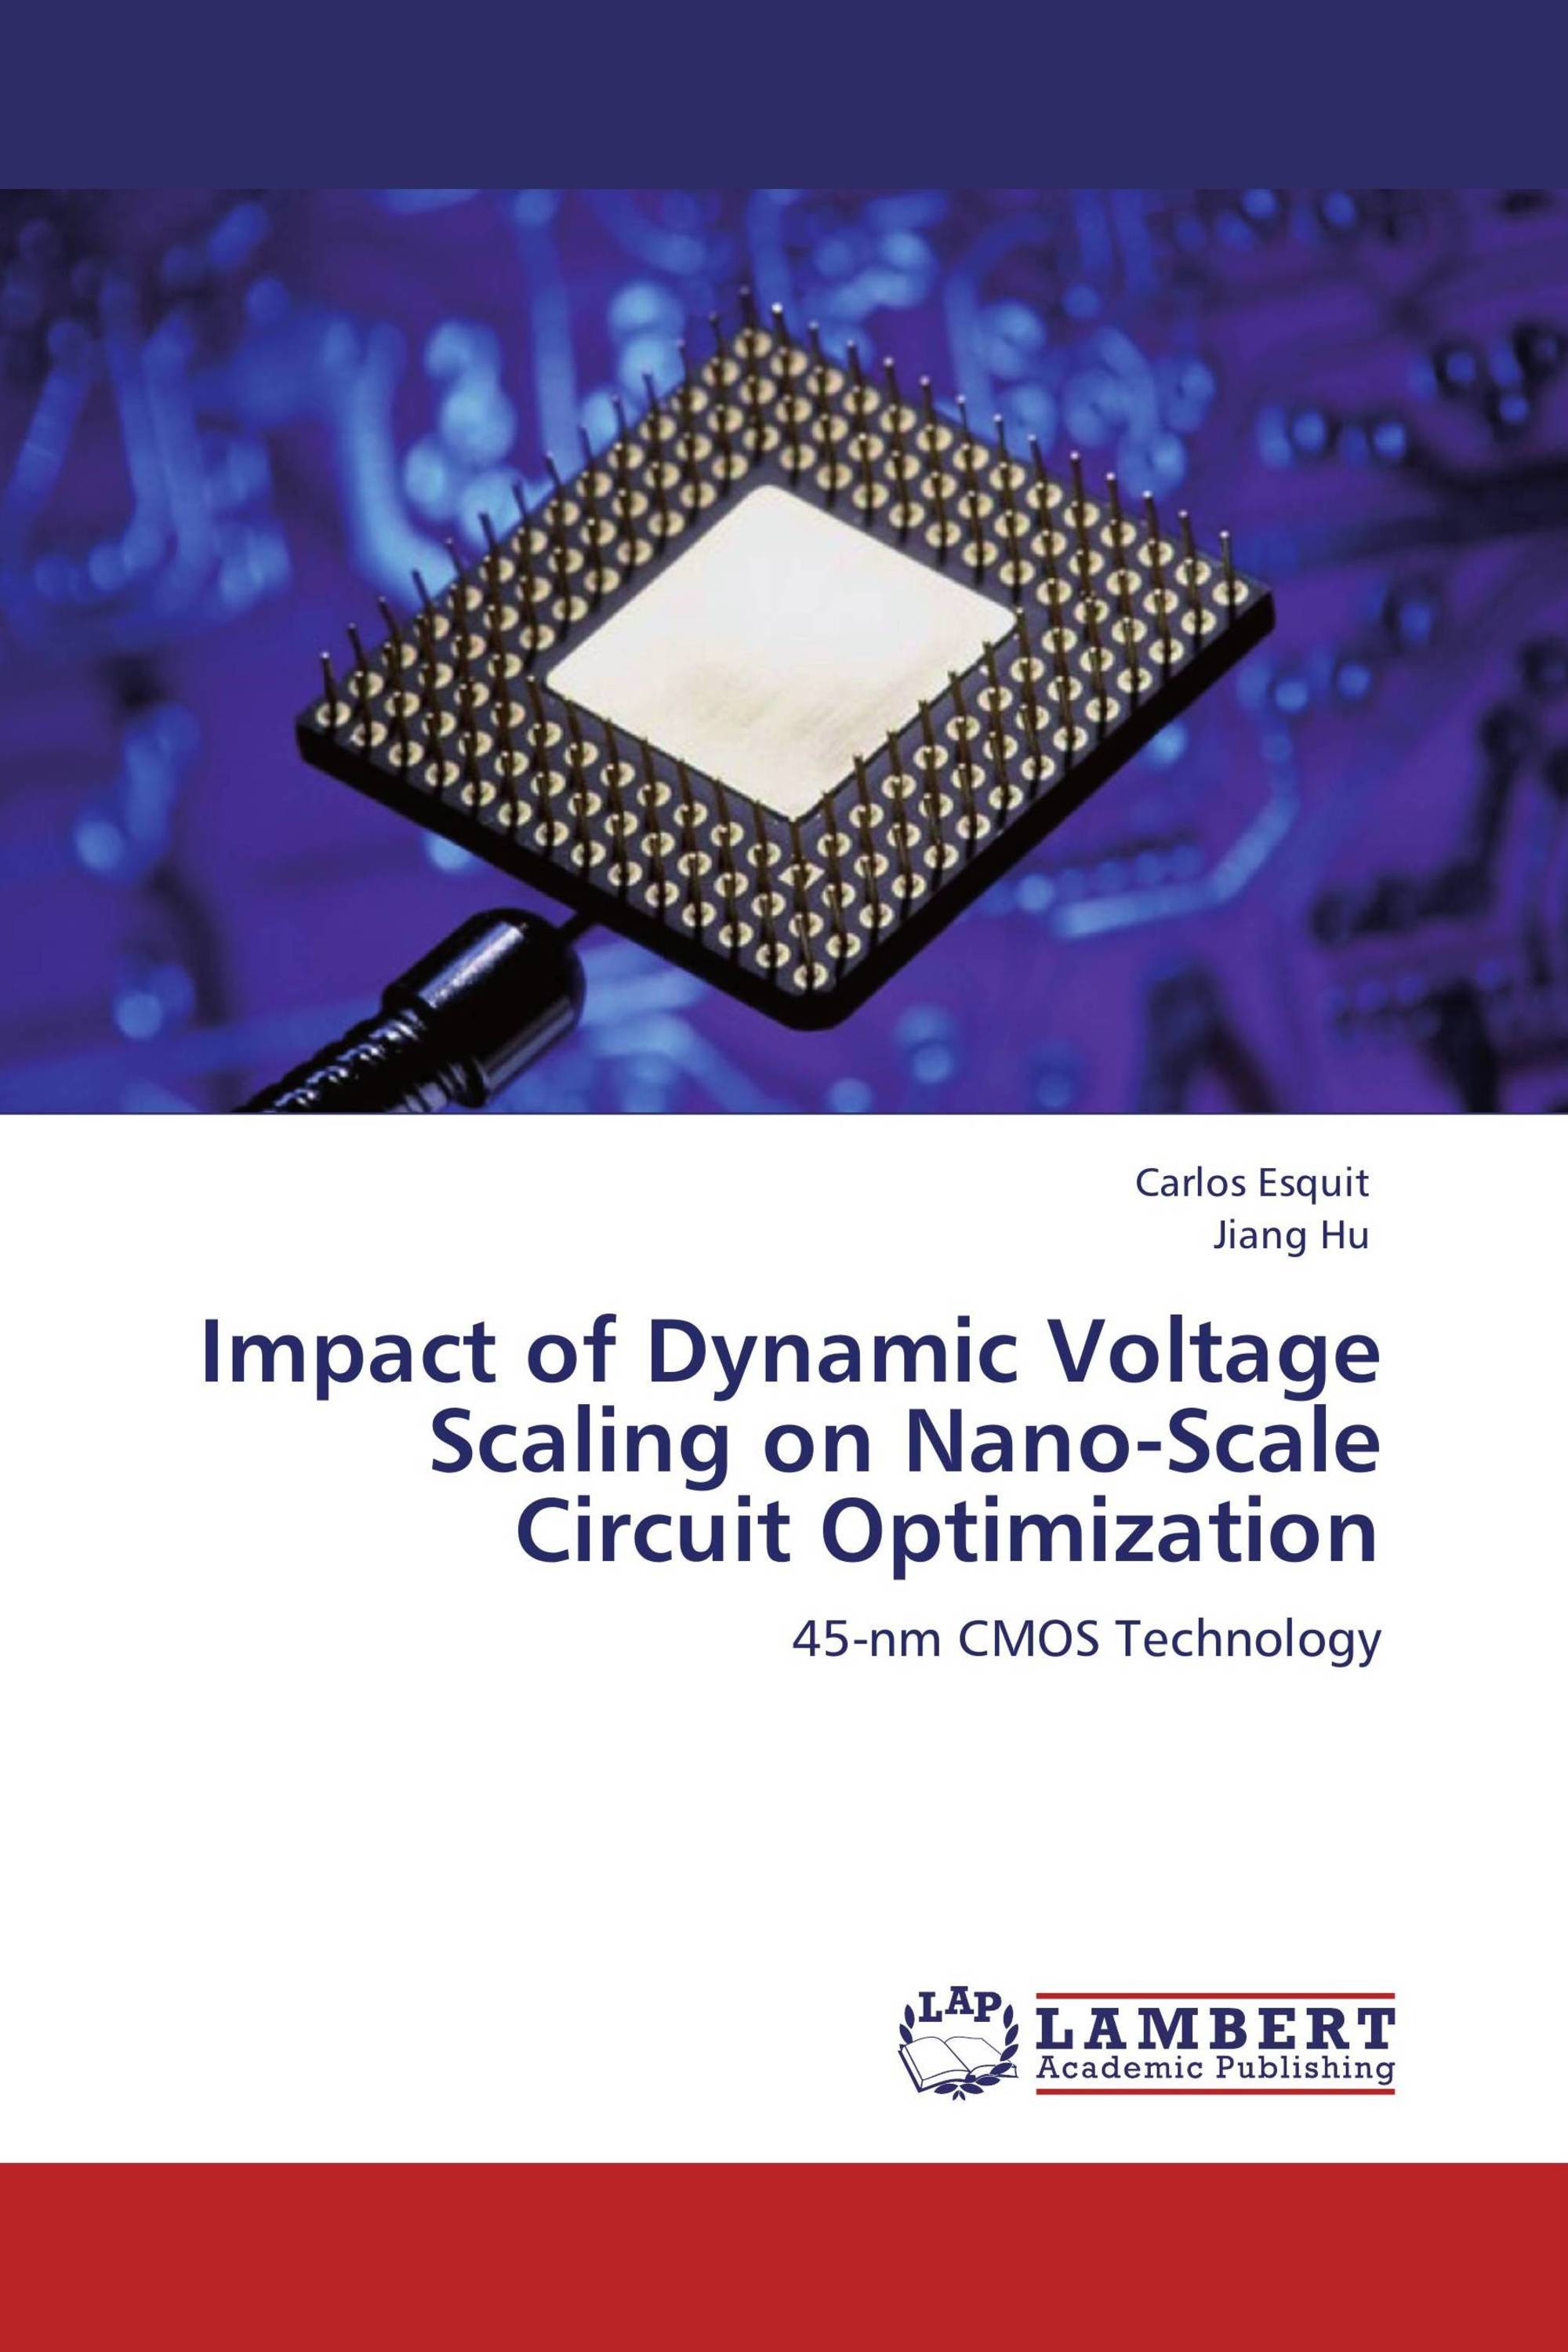 Impact of Dynamic Voltage Scaling on Nano-Scale Circuit Optimization